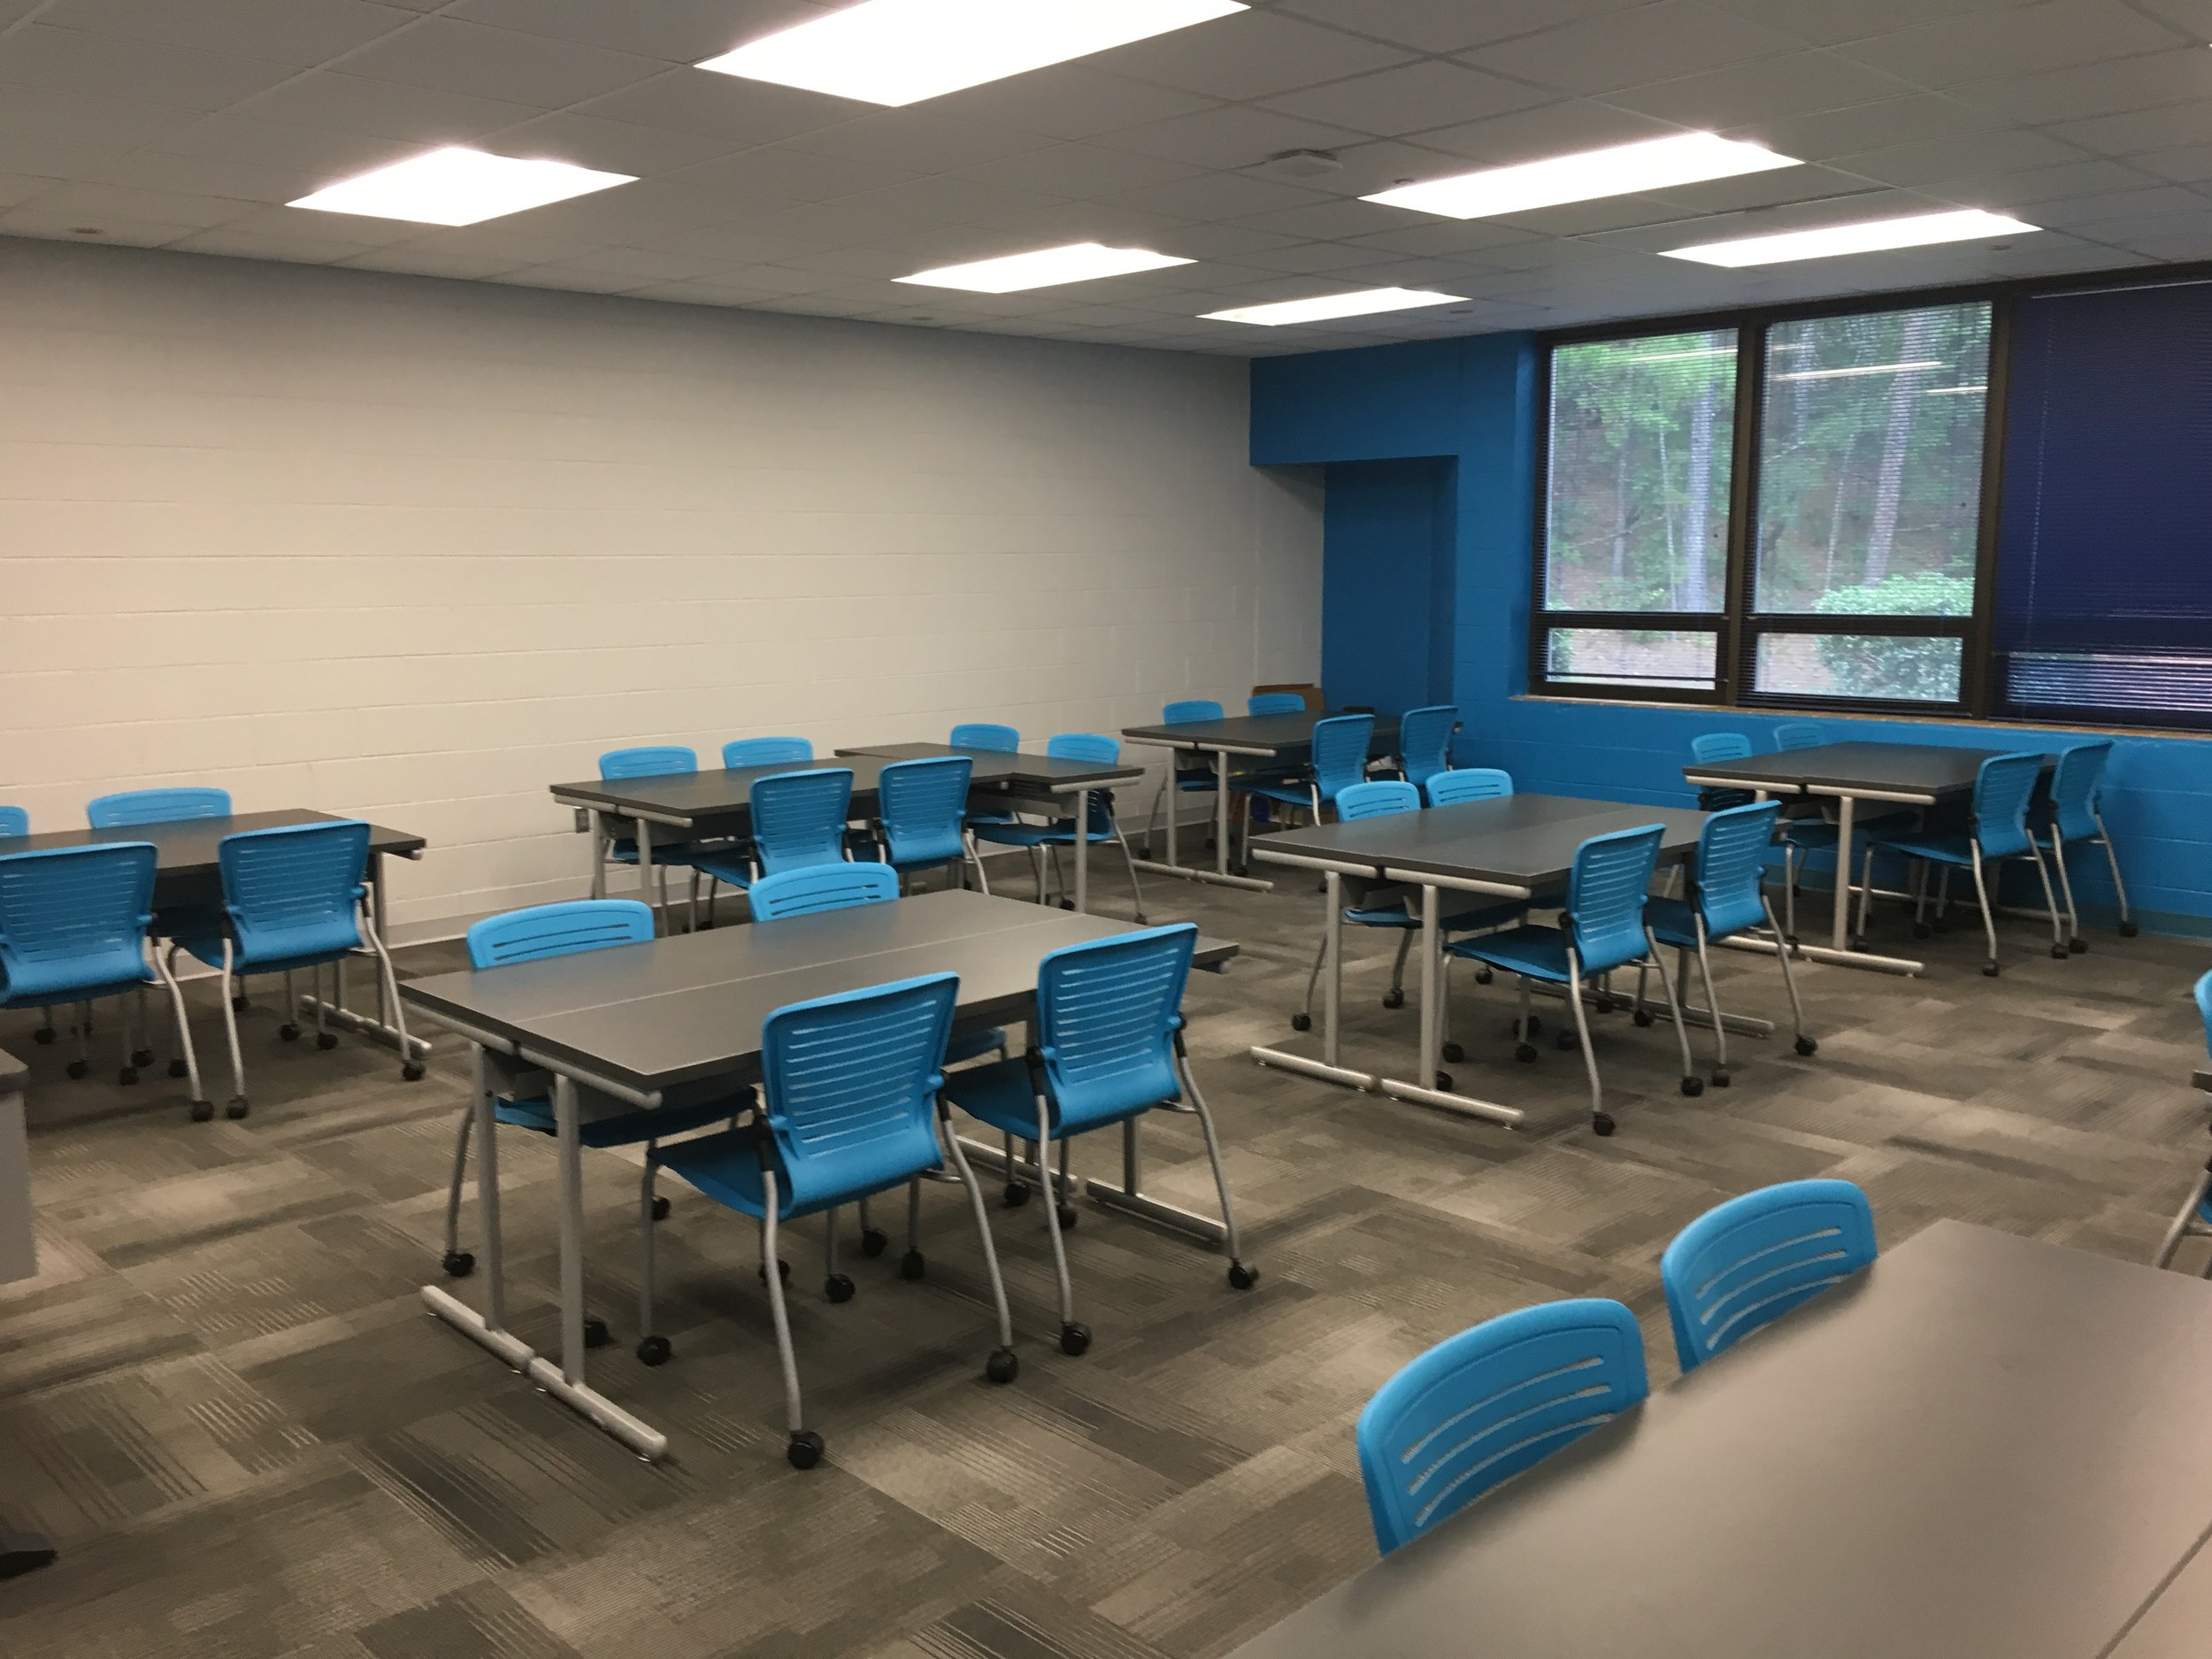 Jacksonville State University - Active Learning Table Install Pic 11.JPG